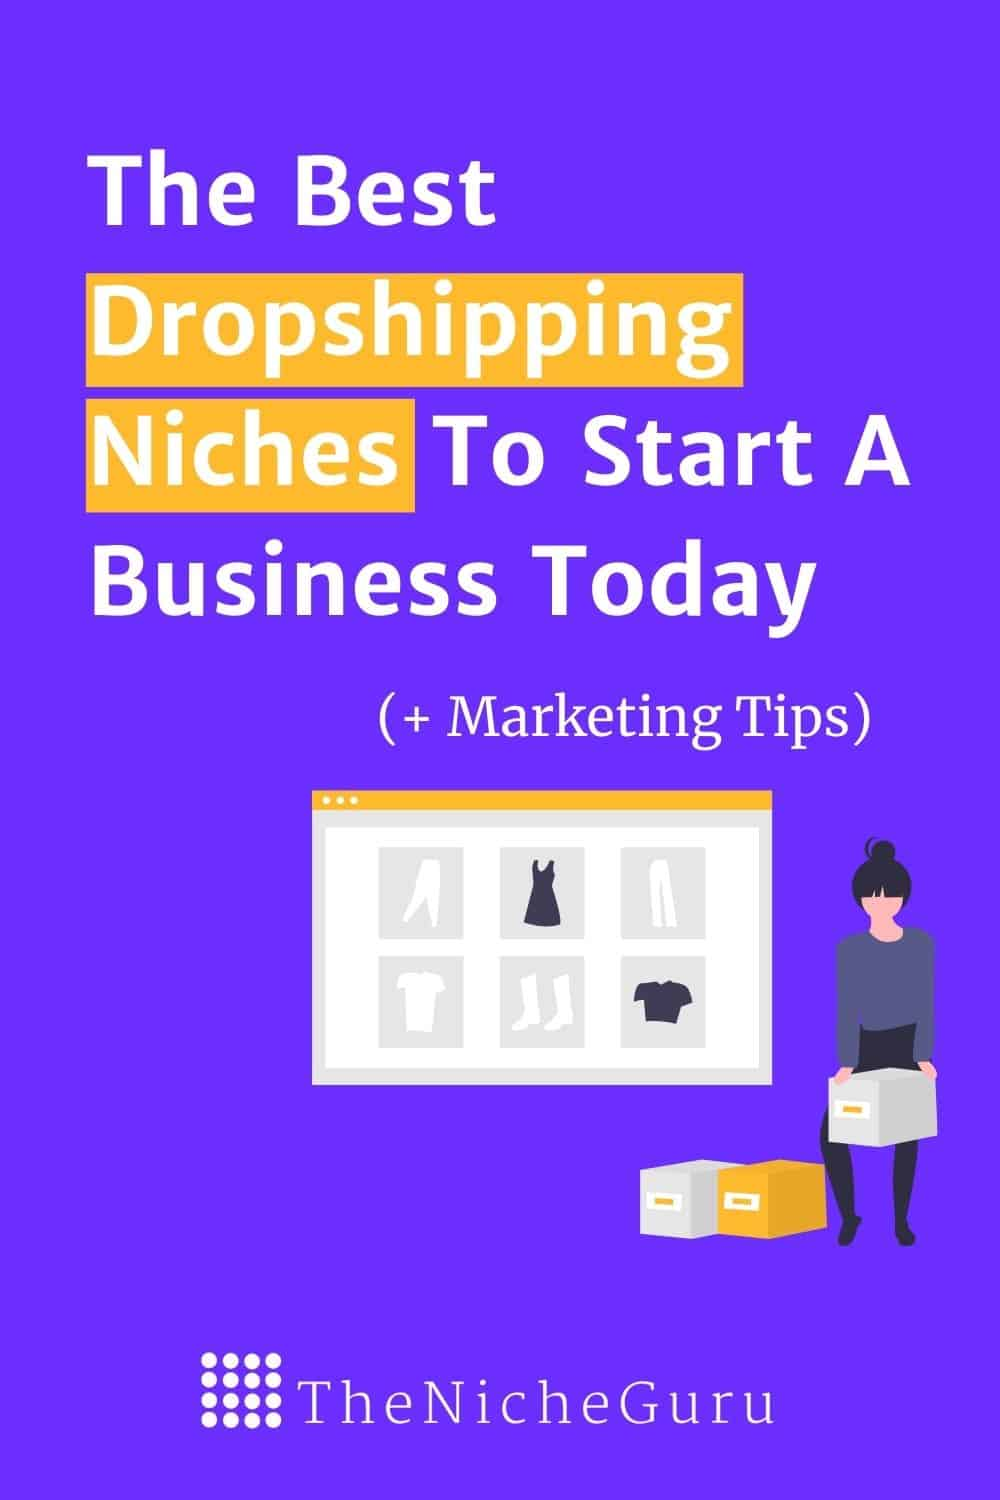 Find the best dropshipping niches to start a profitable business today. Shopify,  Woocommerce, Ali Express and Amazon platforms to promote your products. #niche #nicheideas #dropshipping #shopify #amazon #ecommerce #aliexpress